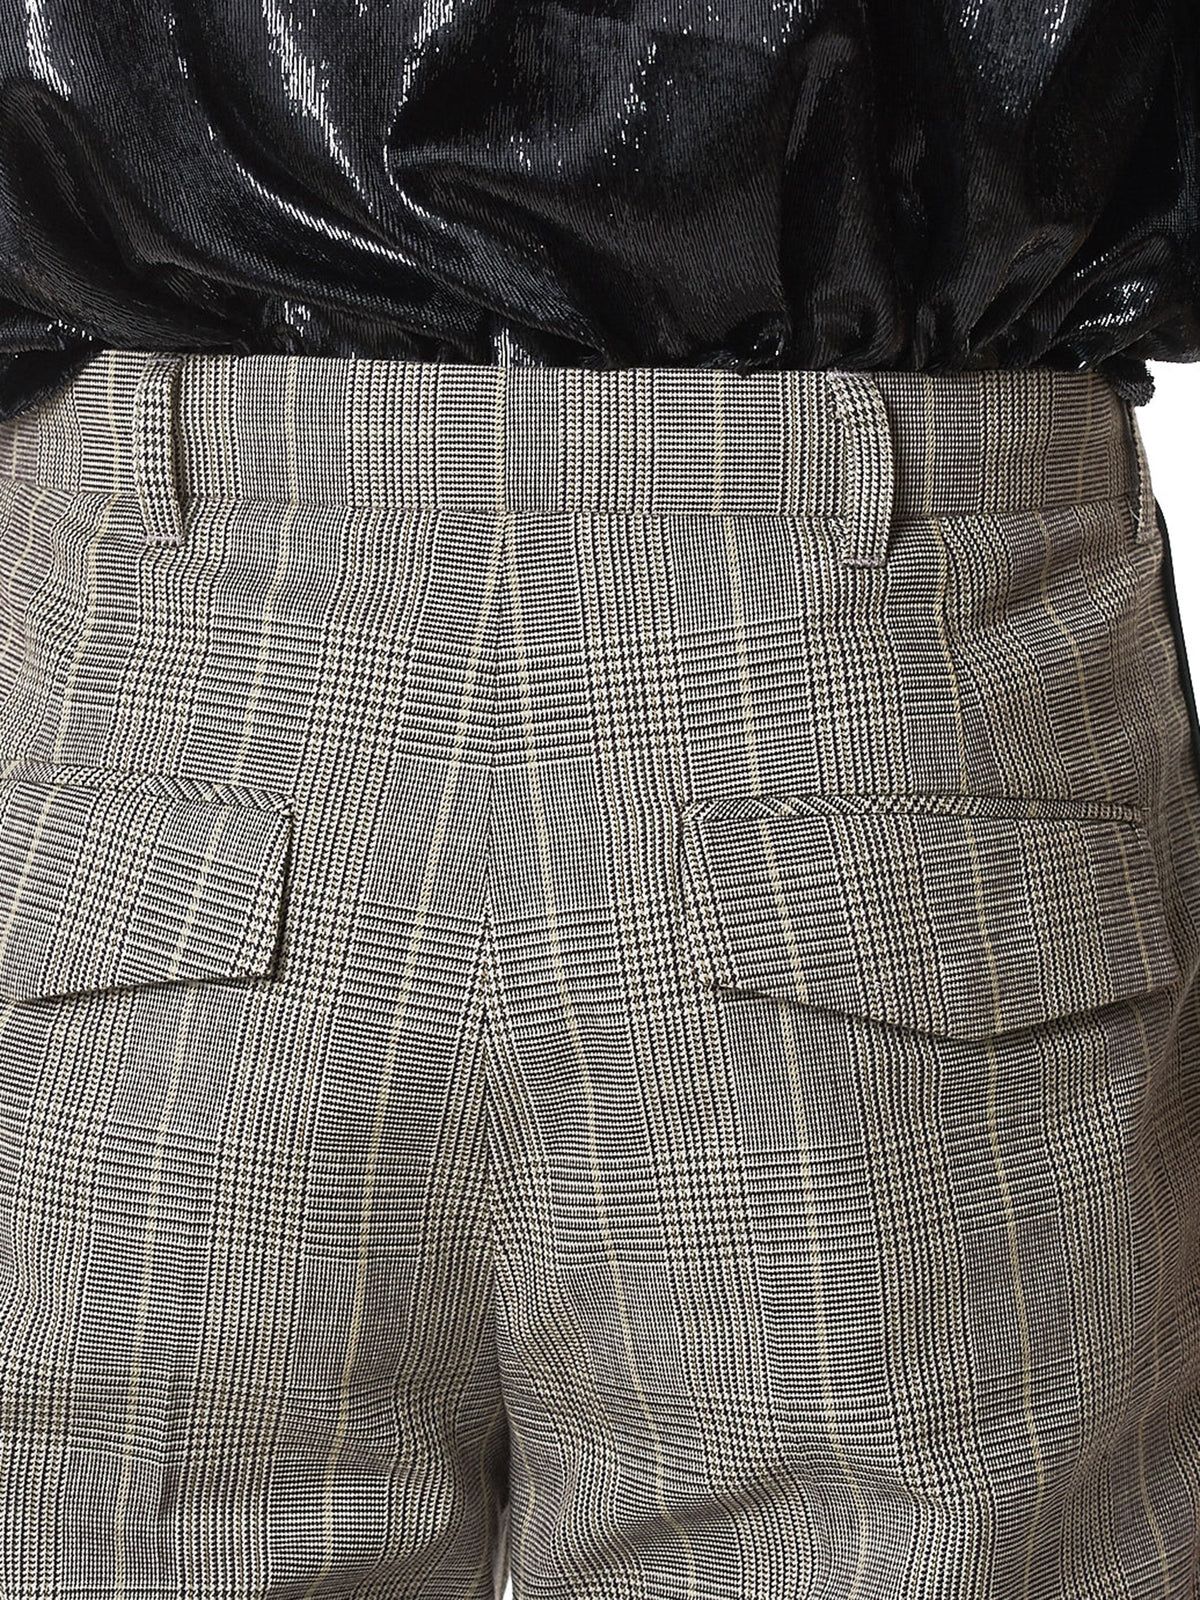 NONA9ON Check Trousers - Hlorenzo detail 2